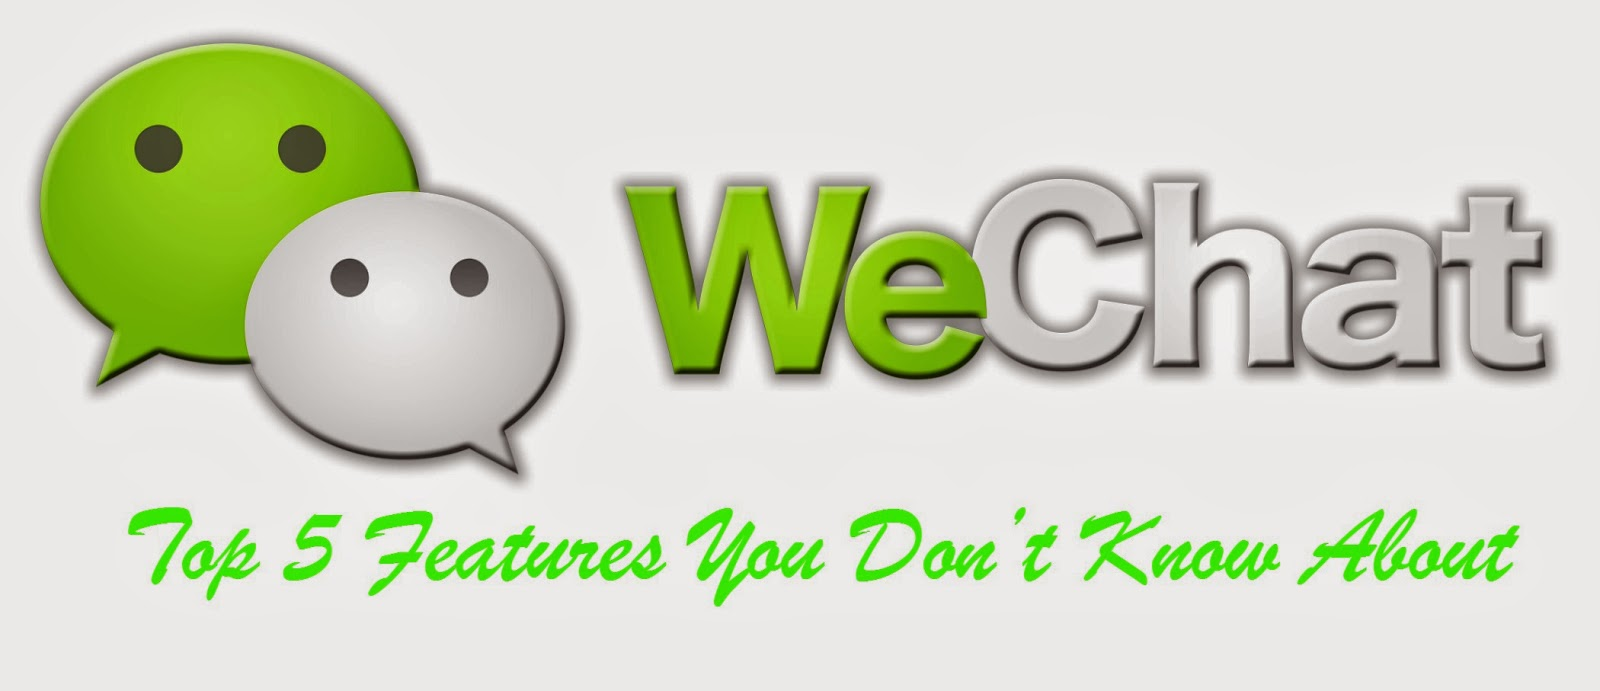 Top 5 WeChat Features You Don't Know About - Pages Flipper